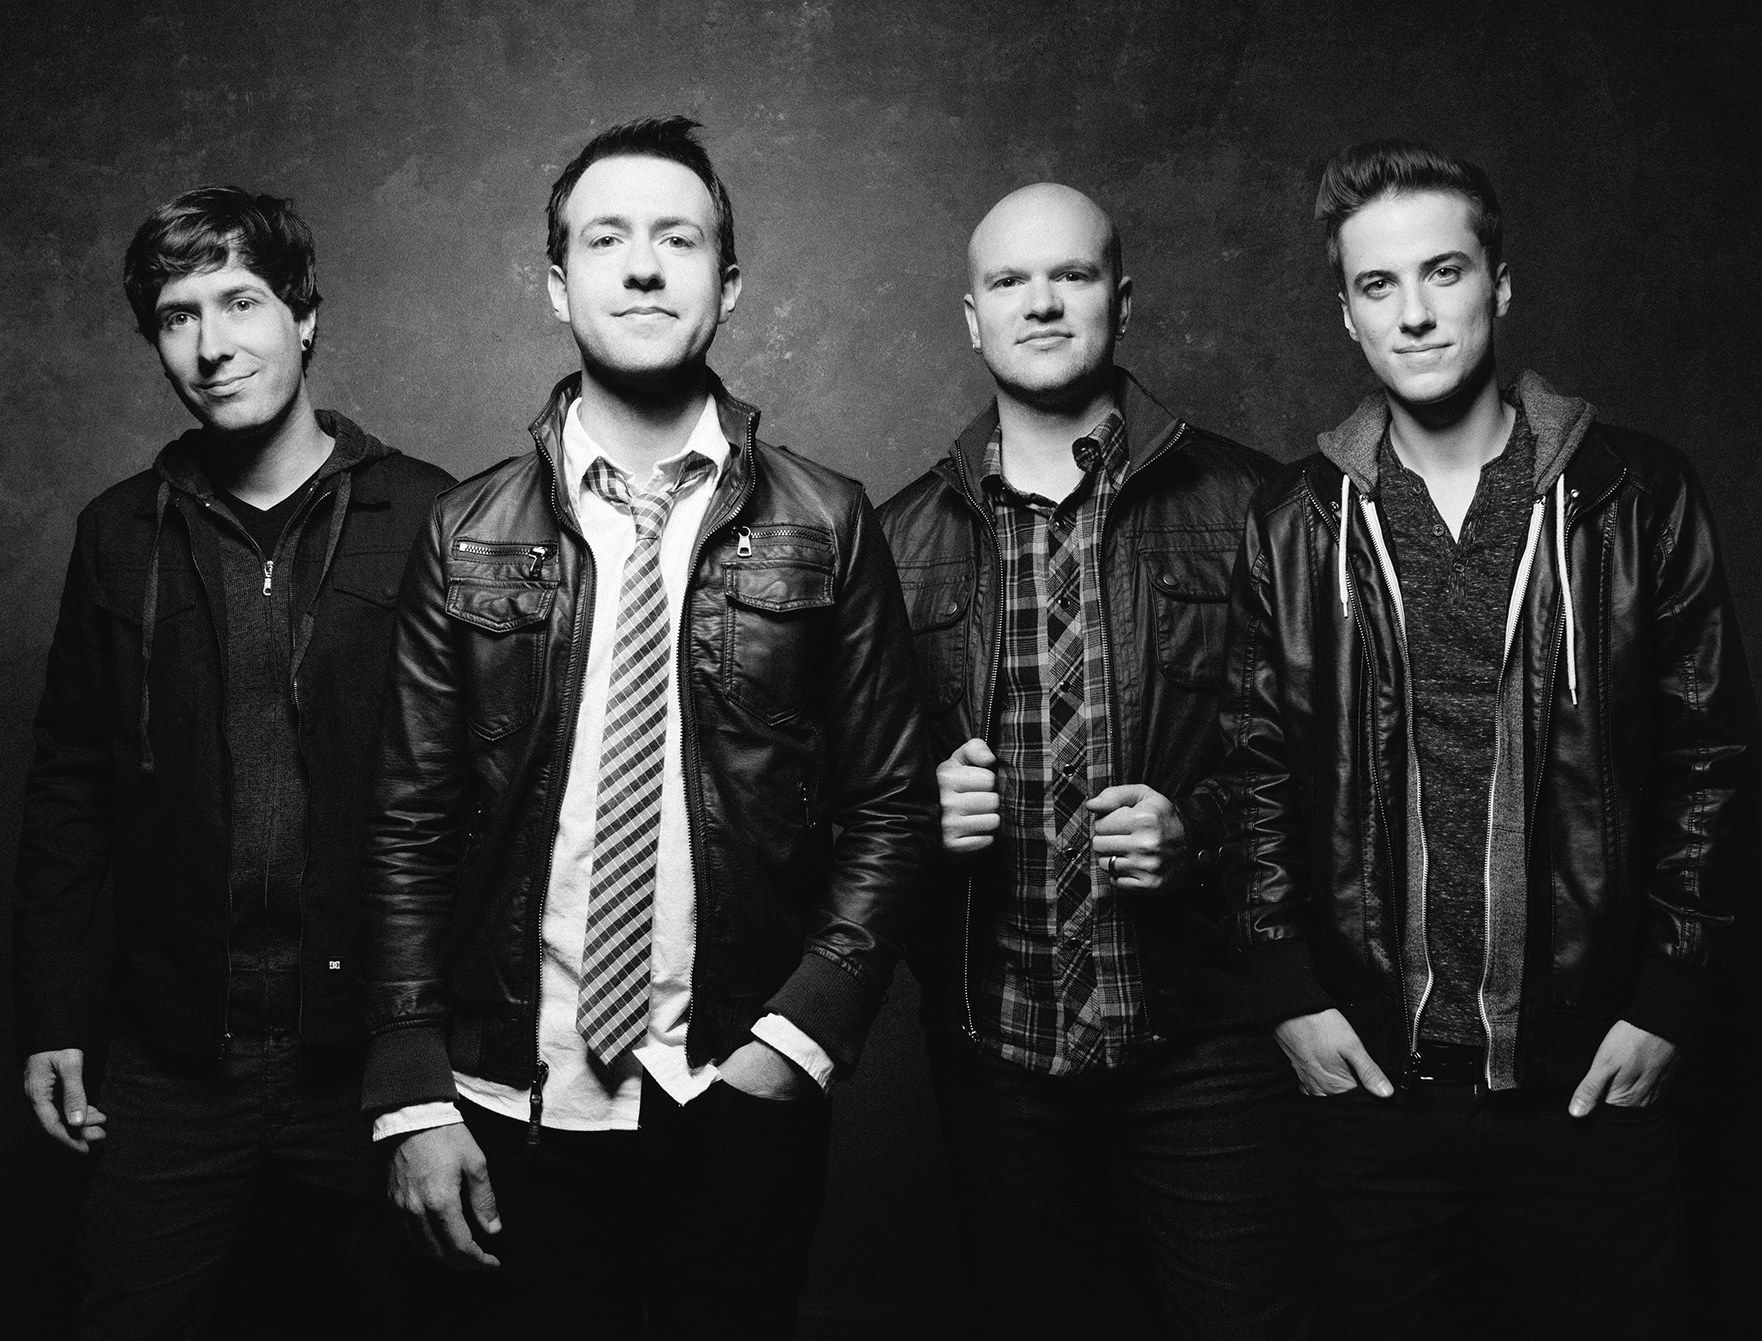 READ: Jonathan Steingard From Christian Band 'Hawk Nelson' RENOUNCES Religion